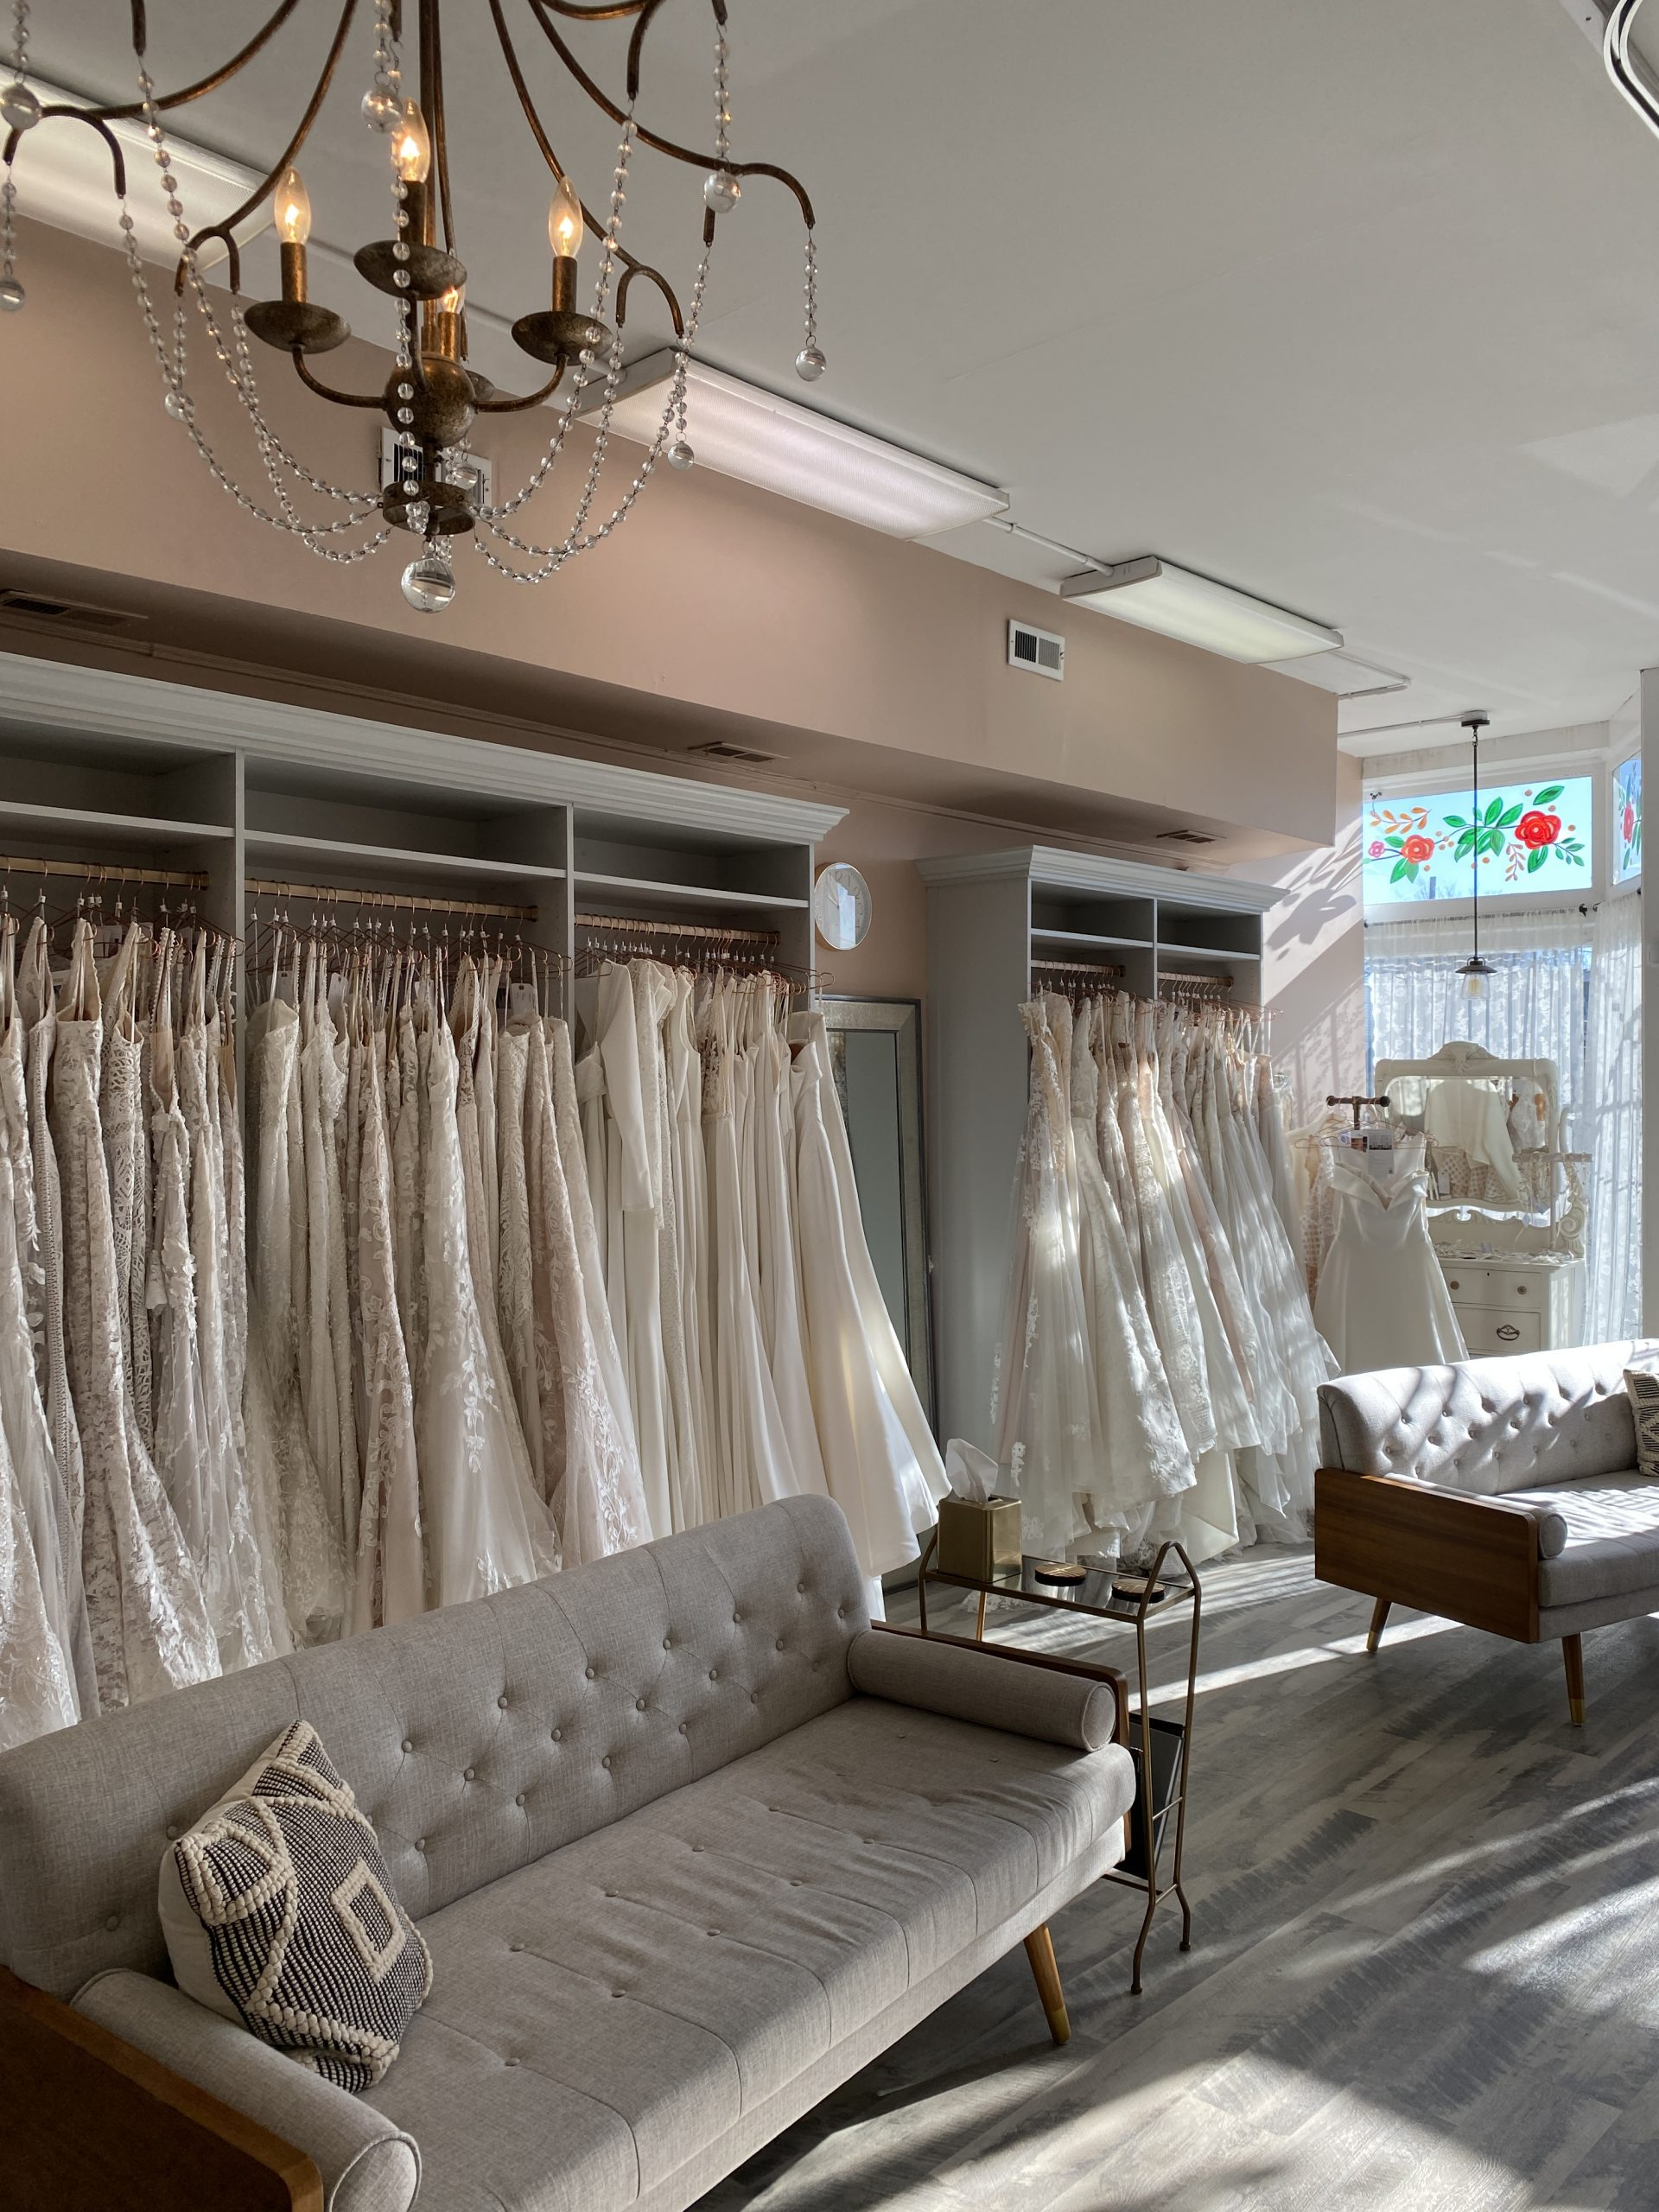 Urban Set Bride, a Black-Owned Bridal Boutique featuring Maggie Sottero Wedding Dresses